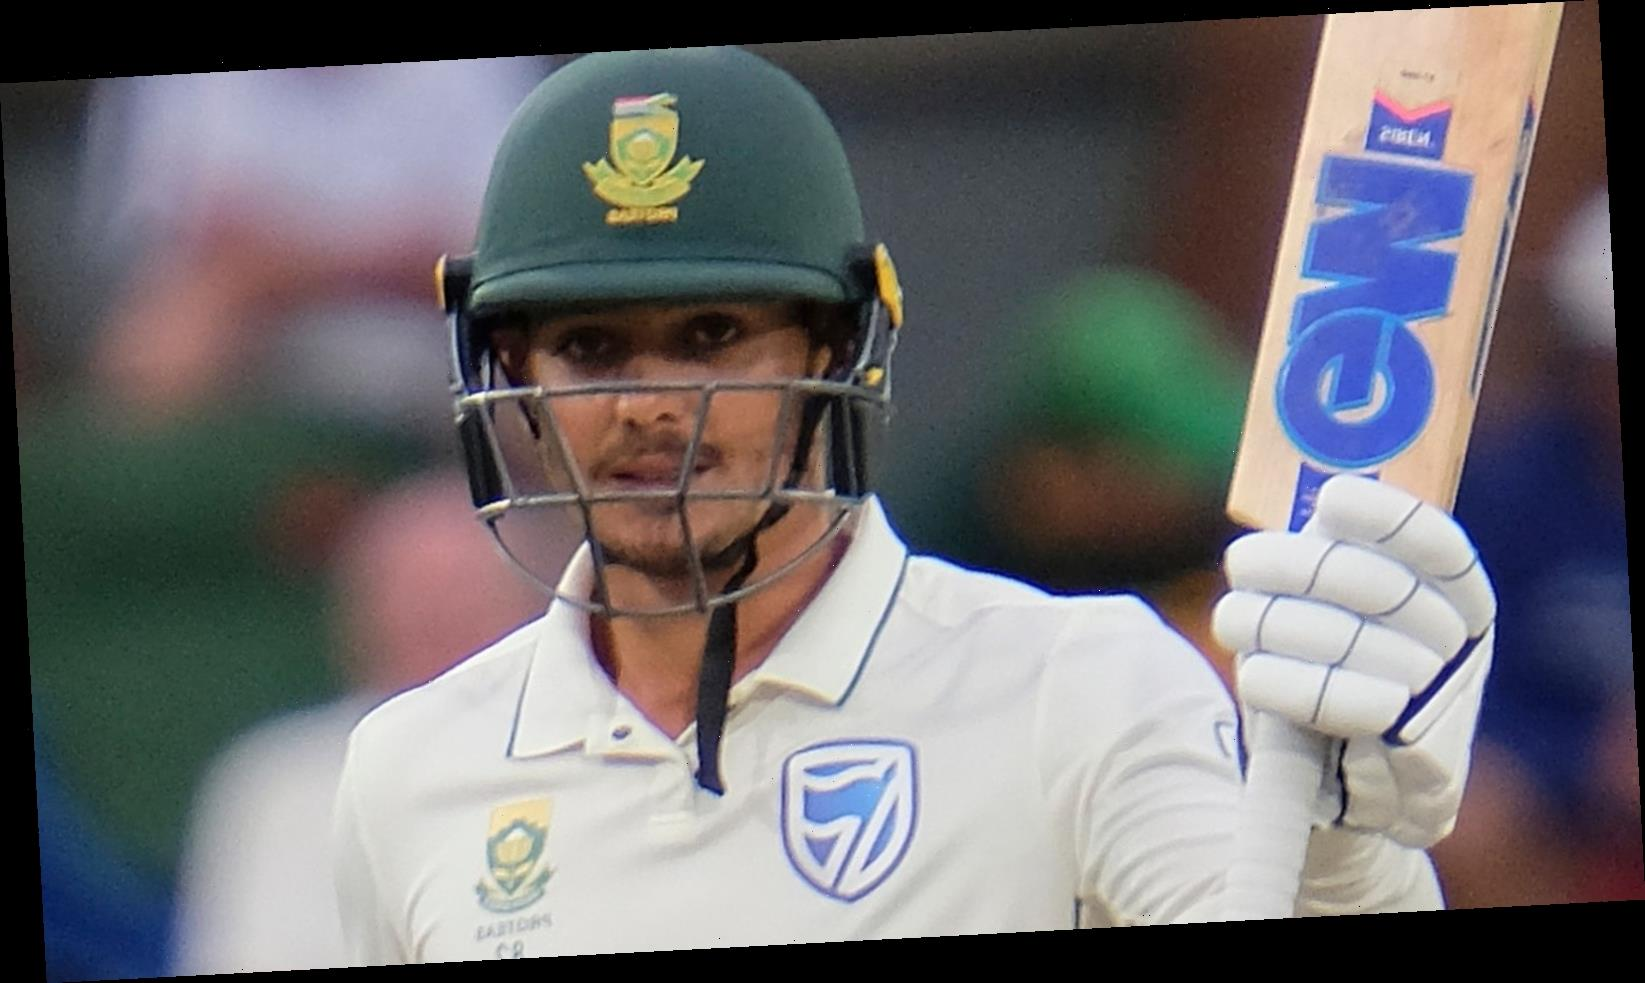 Quinton de Kock says he will not become South Africa's permanent Test captain